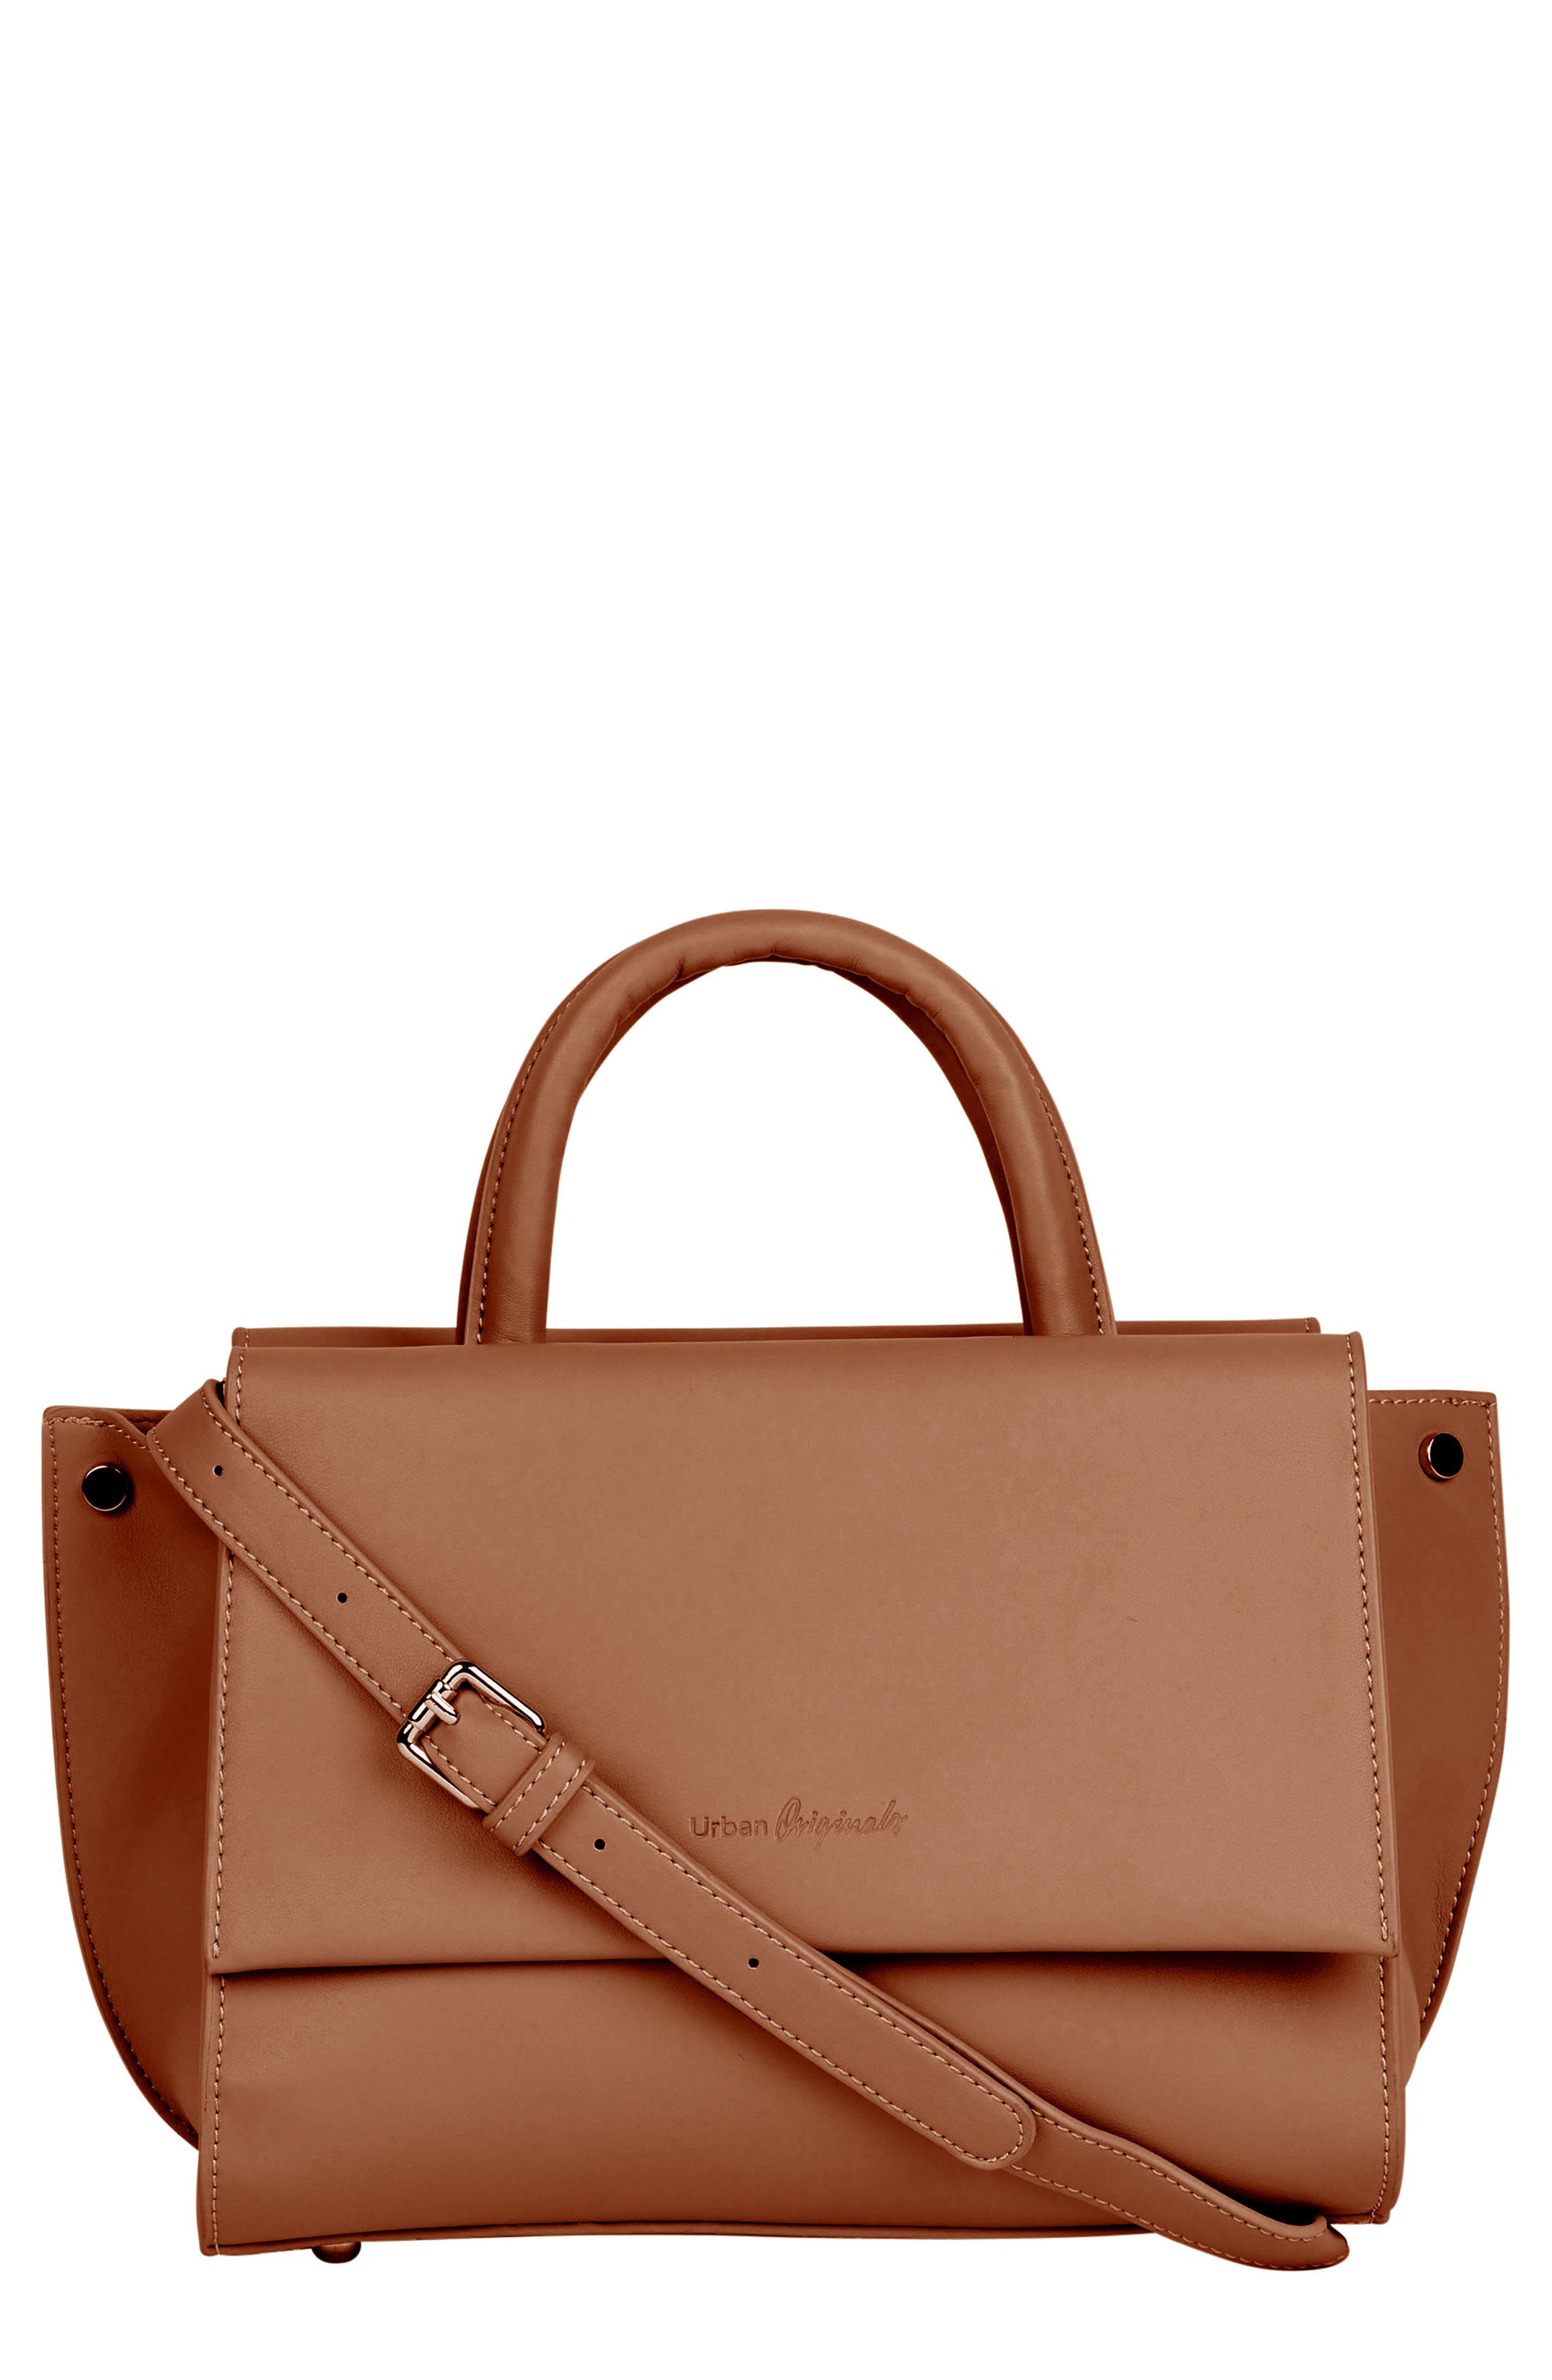 Ethereal Vegan Leather Tote,                         Main,                         color, TAN